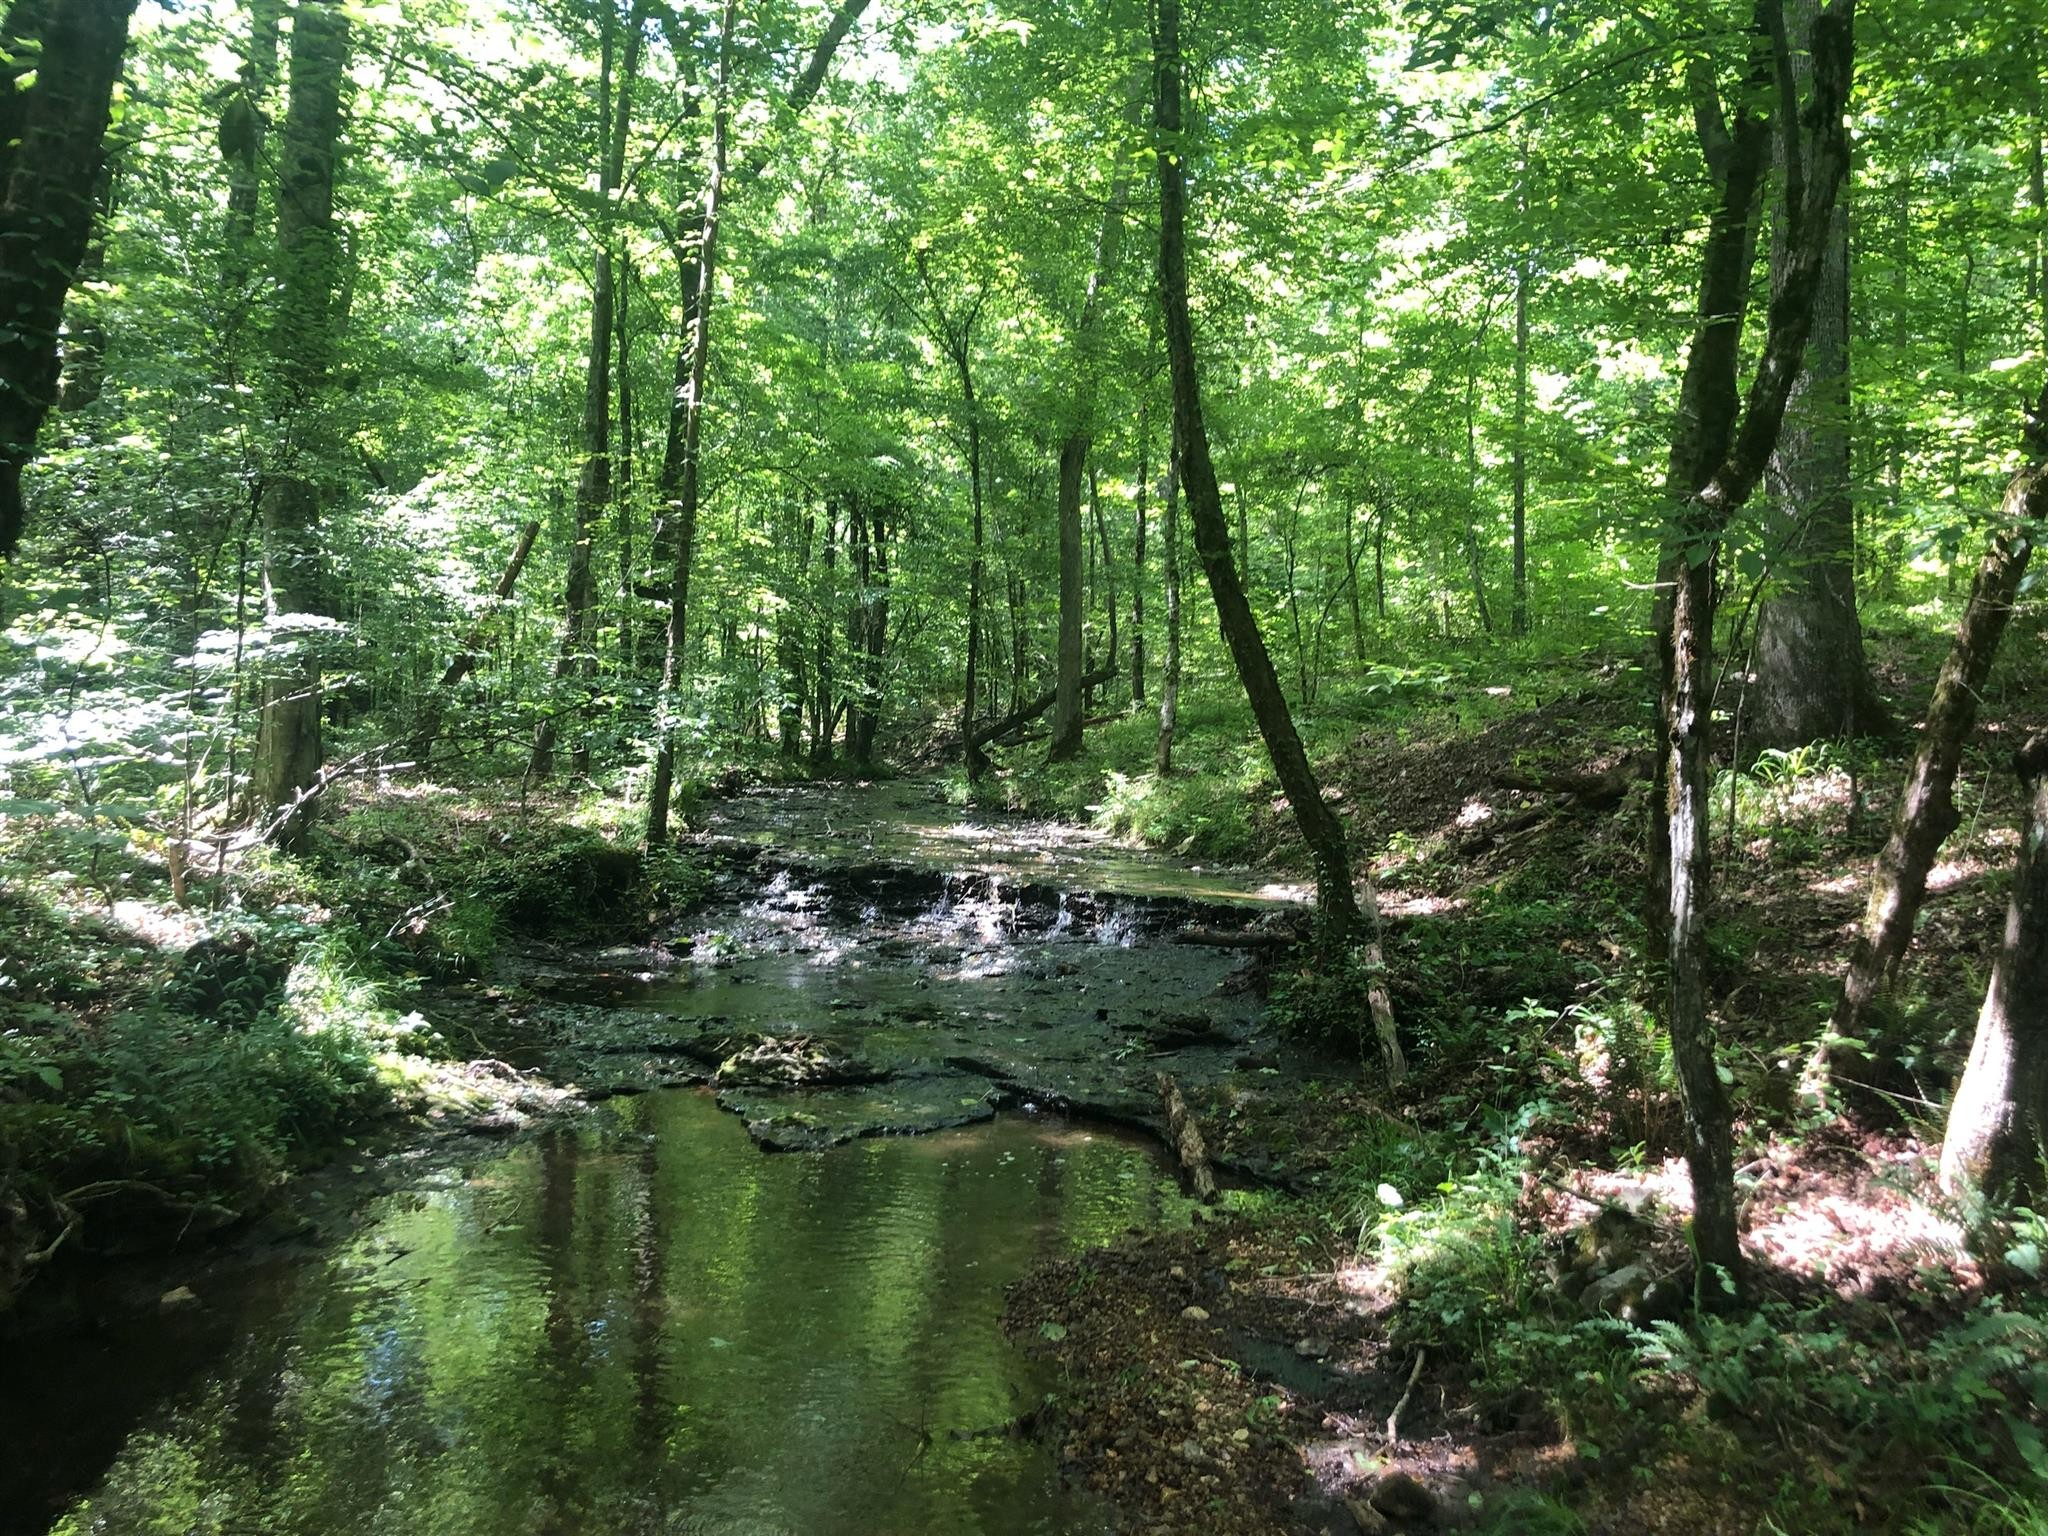 437 S Ore Rd S Property Photo - Westpoint, TN real estate listing